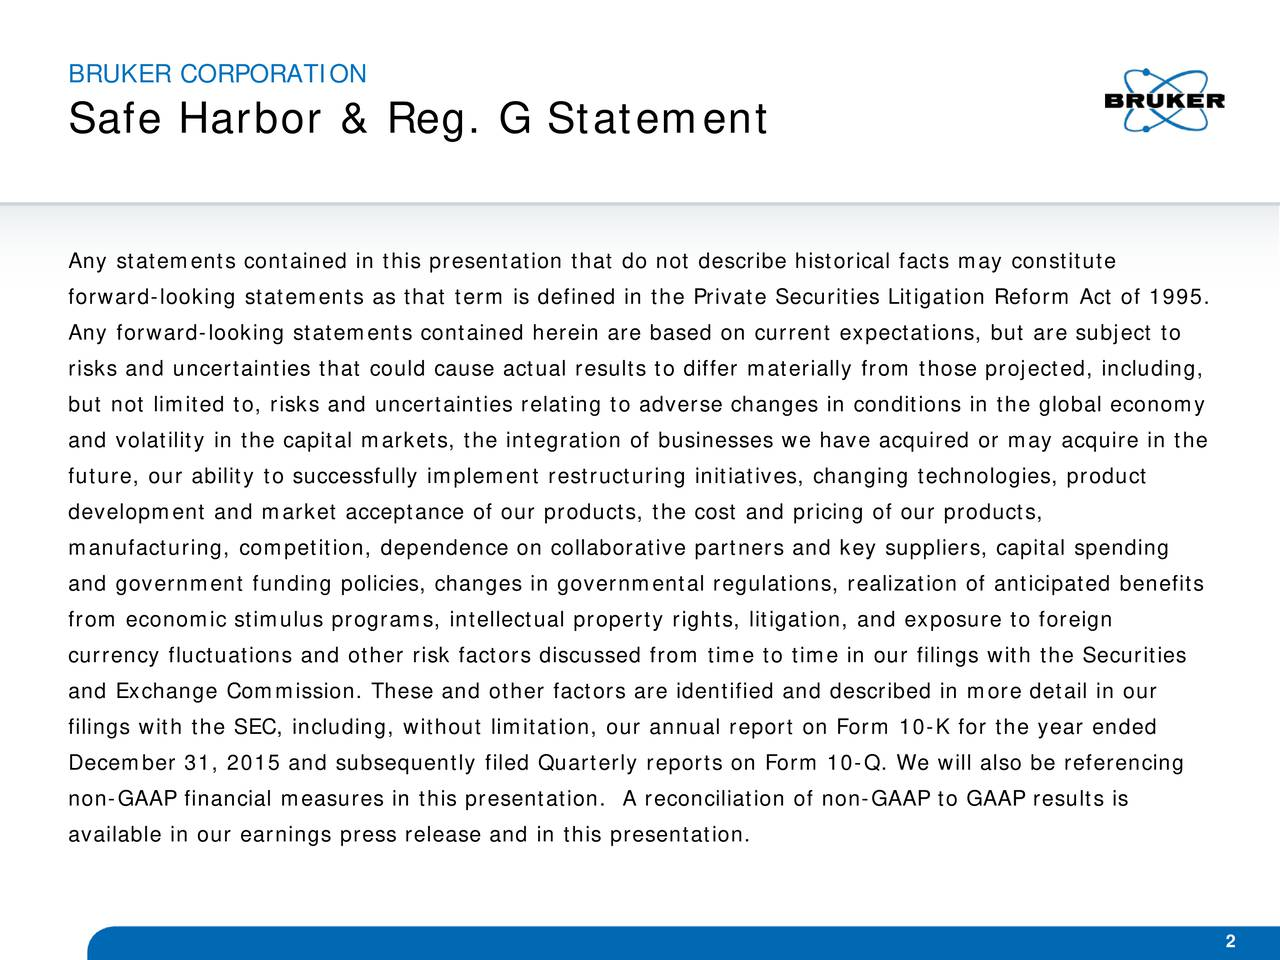 Safe Harbor & Reg. G Statement Any statements contained in this presentation that do not describe historical facts may constitute forward-looking statements as that term is defined in the Private Securities Litigation Reform Act of 1995. Any forward-looking statements contained herein are based on current expectations, but are subject to risks and uncertainties that could cause actual results to differ materially from those projected, including, but not limited to, risks and uncertainties relating to adverse changes in conditions in the global economy and volatility in the capital markets, the integration of businesses we have acquired or may acquire in the future, our ability to successfully implement restructuring initiatives, changing technologies, product development and market acceptance of our products, the cost and pricing of our products, manufacturing, competition, dependence on collaborative partners and key suppliers, capital spending and government funding policies, changes in governmental regulations, realization of anticipated benefits from economic stimulus programs, intellectual property rights, litigation, and exposure to foreign currency fluctuations and other risk factors discussed from time to time in our filings with the Securities and Exchange Commission. These and other factors are identified and described in more detail in our filings with the SEC, including, without limitation, our annual report on Form 10-K for the year ended December 31, 2015 and subsequently filed Quarterly reports on Form 10- Q. We will also be referencing non-GAAP financial measures in this presentation. A reconciliation of non-GAAP to GAAP results is available in our earnings press release and in this presentation. 2